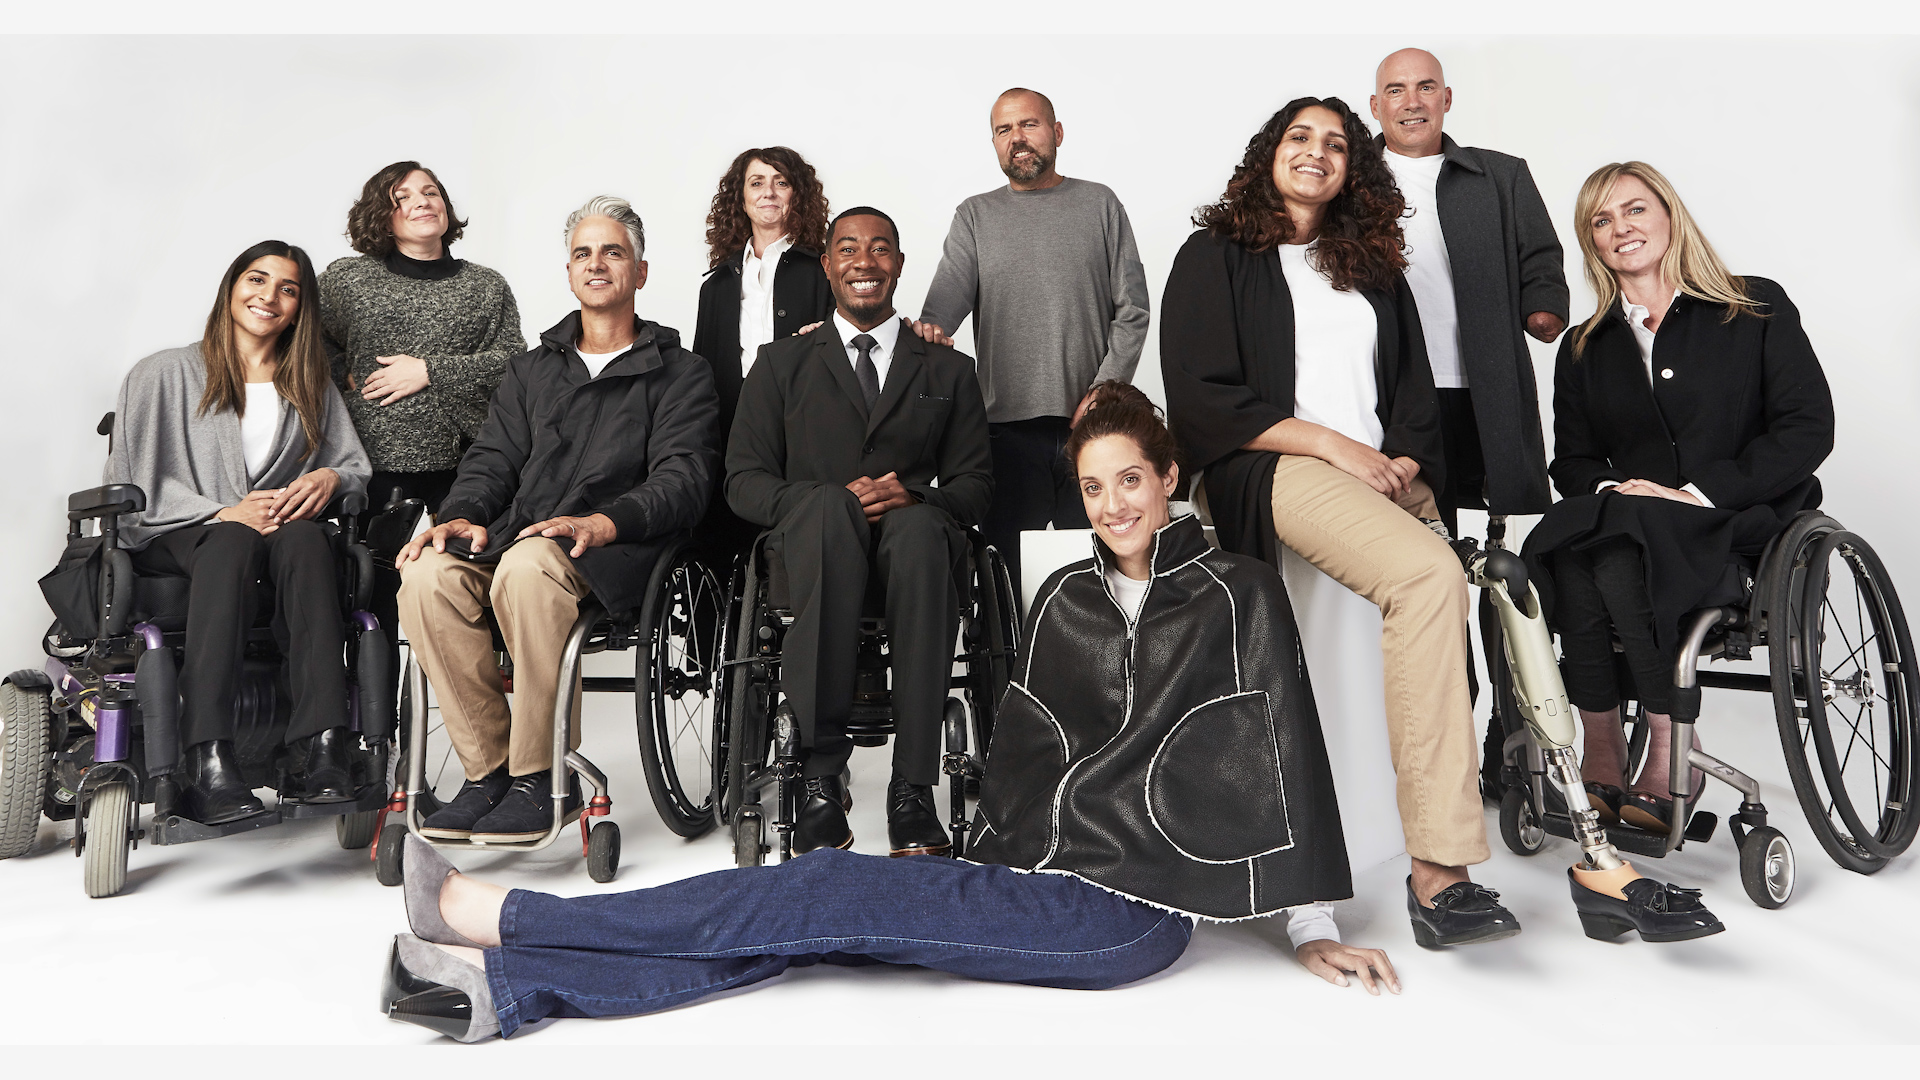 Fashion Designer Creates New Line For People With Physical Disabilities